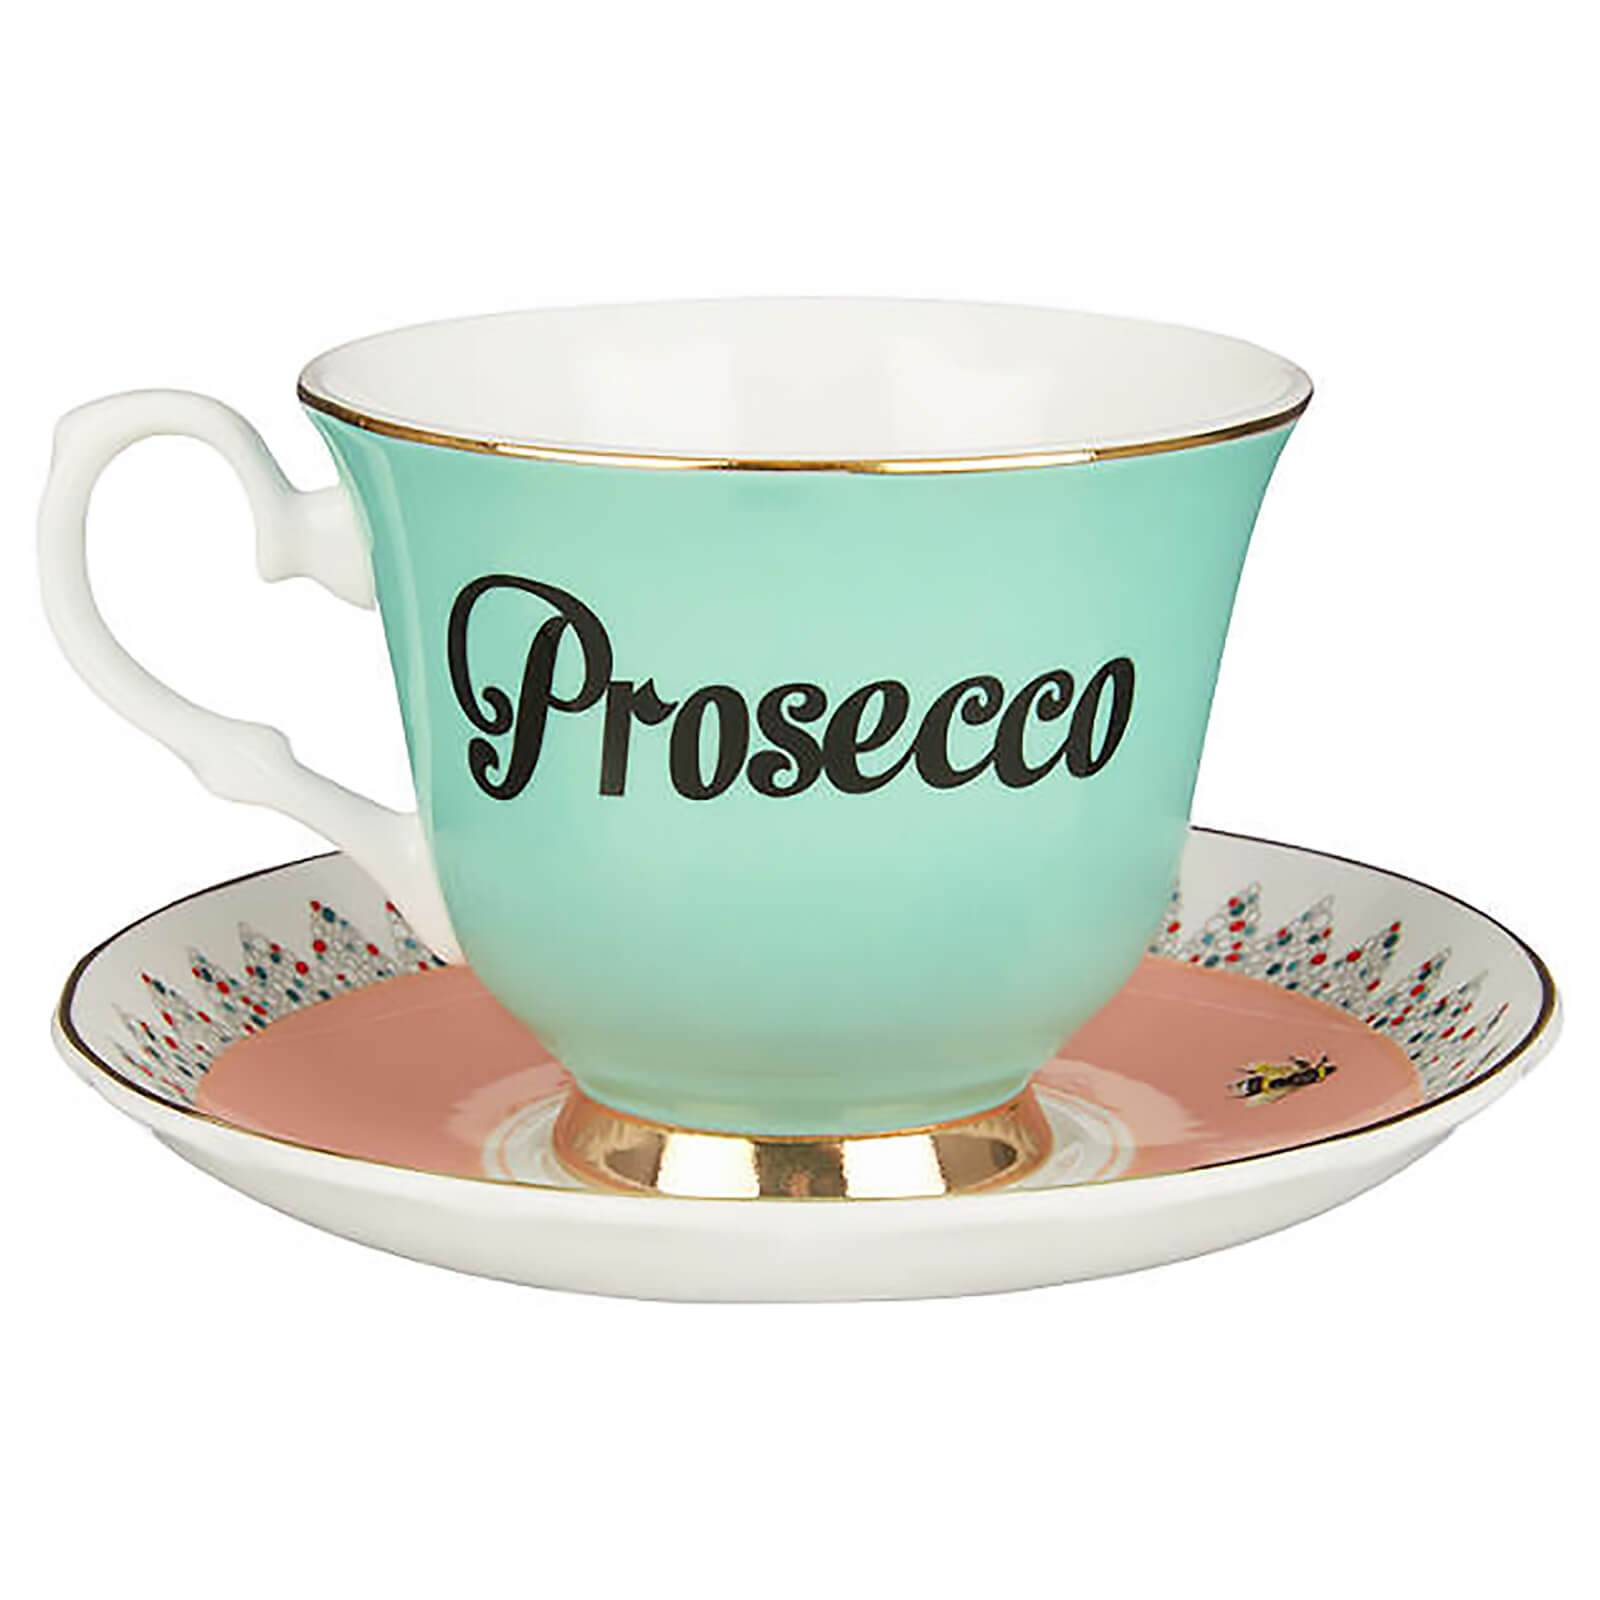 Yvonne Ellen Prosecco Teacup and Saucer - Green